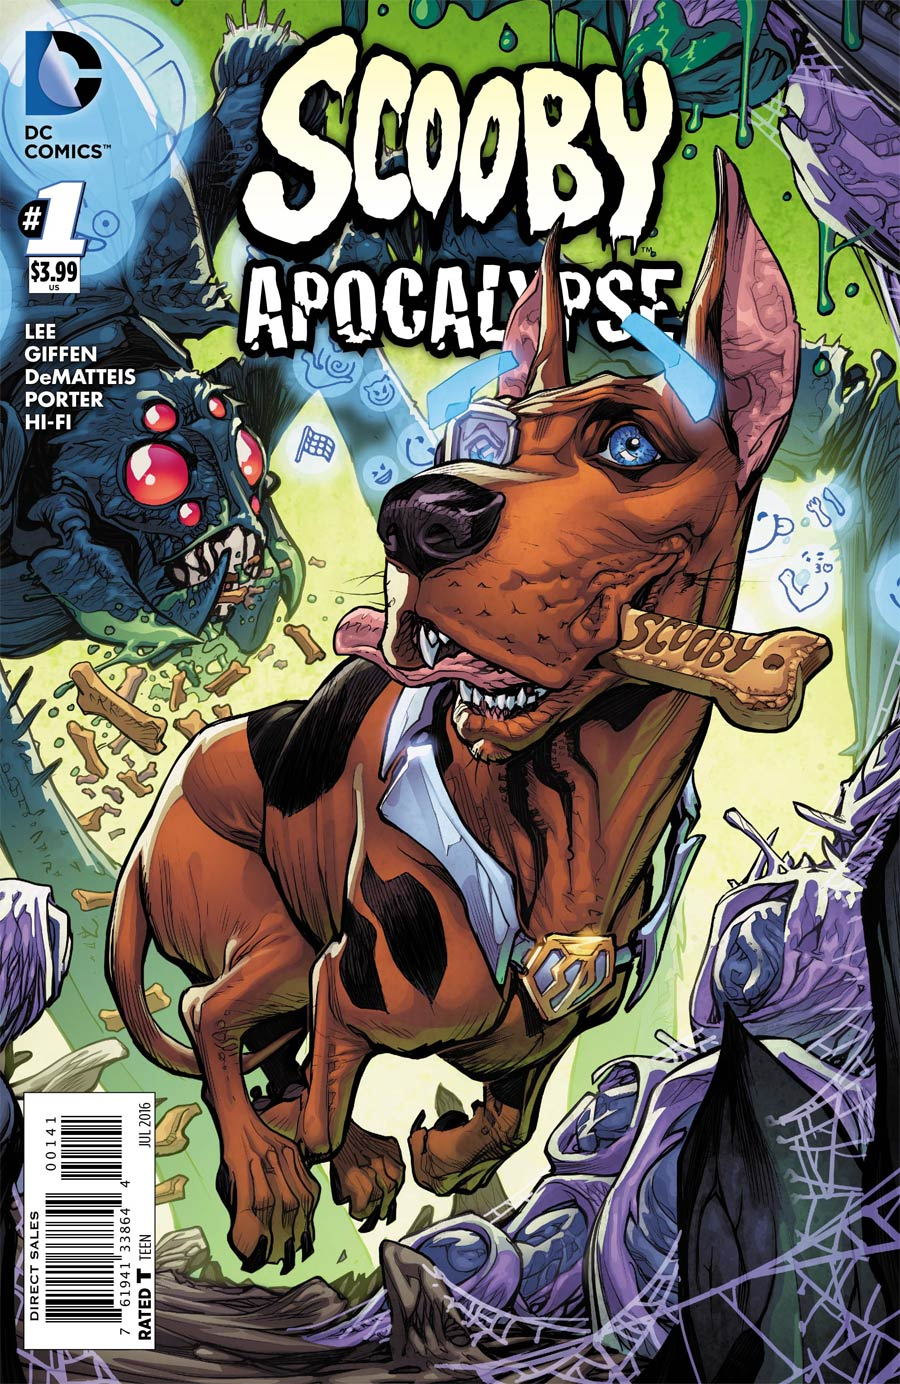 Scooby Apocalypse #1 Cover D Variant Howard Porter Scooby-Doo Cover